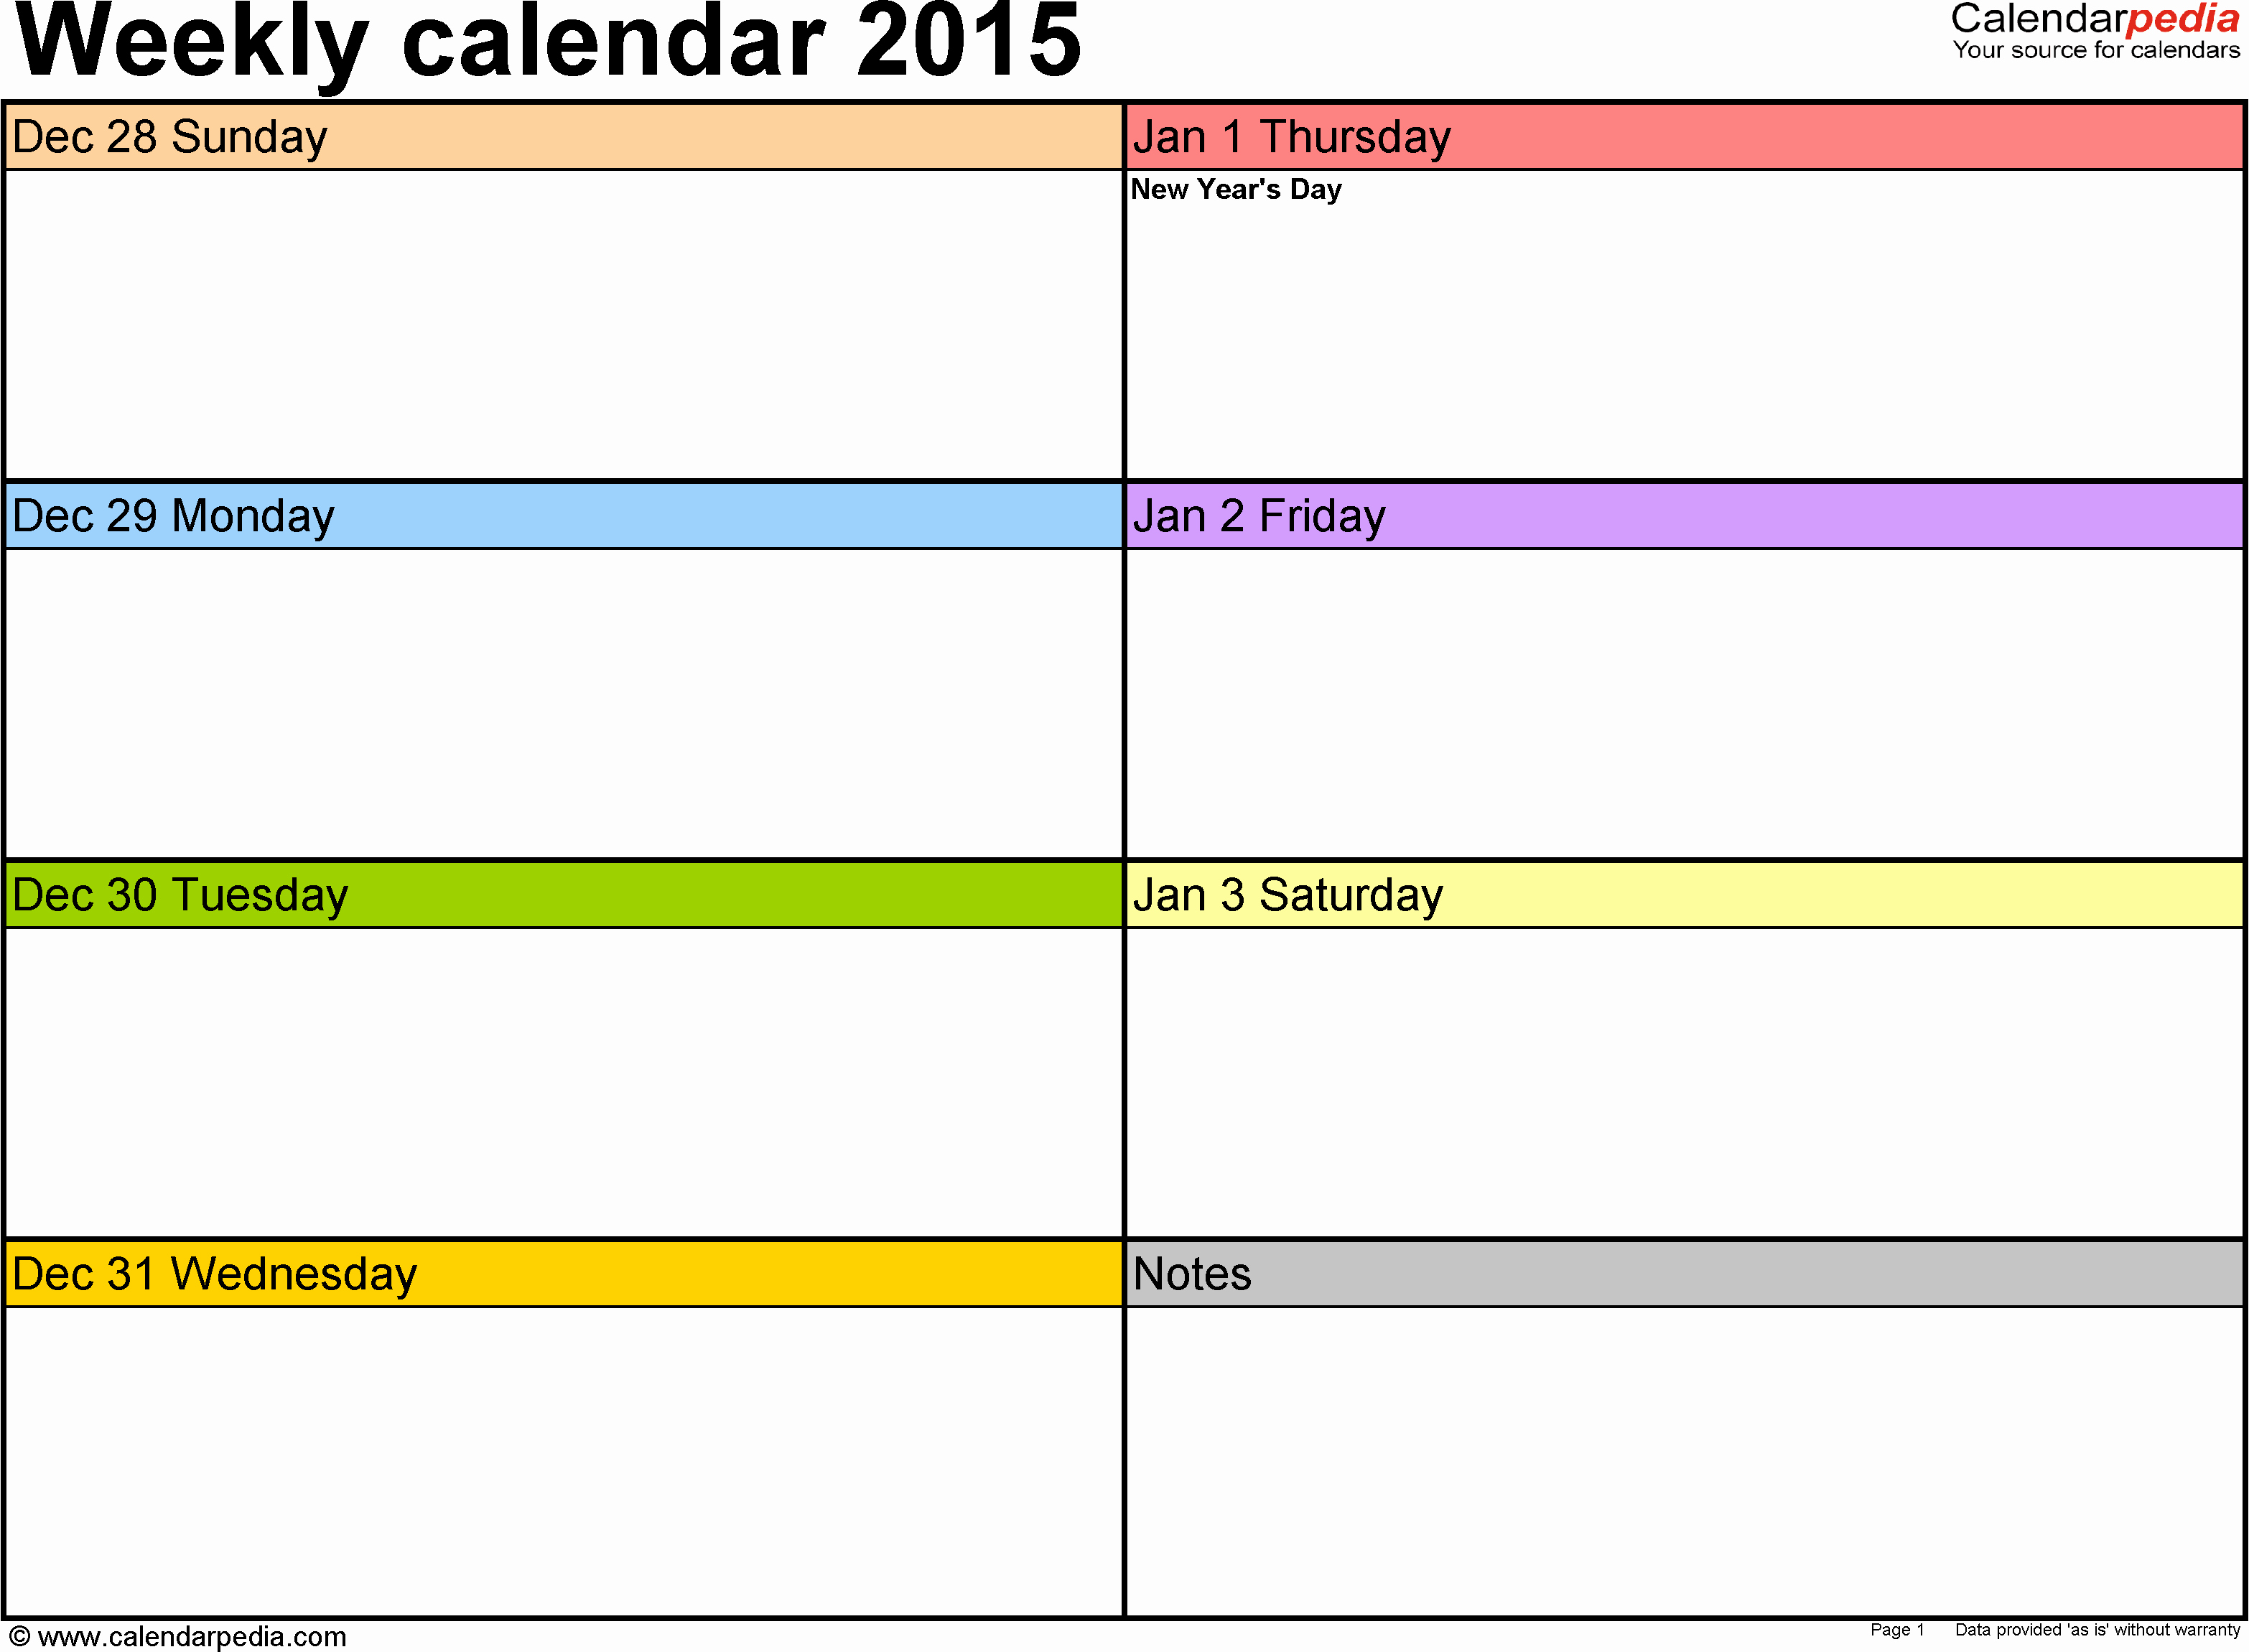 One Week Schedule Template Elegant Weekly Calendar 2015 for Excel 12 Free Printable Templates